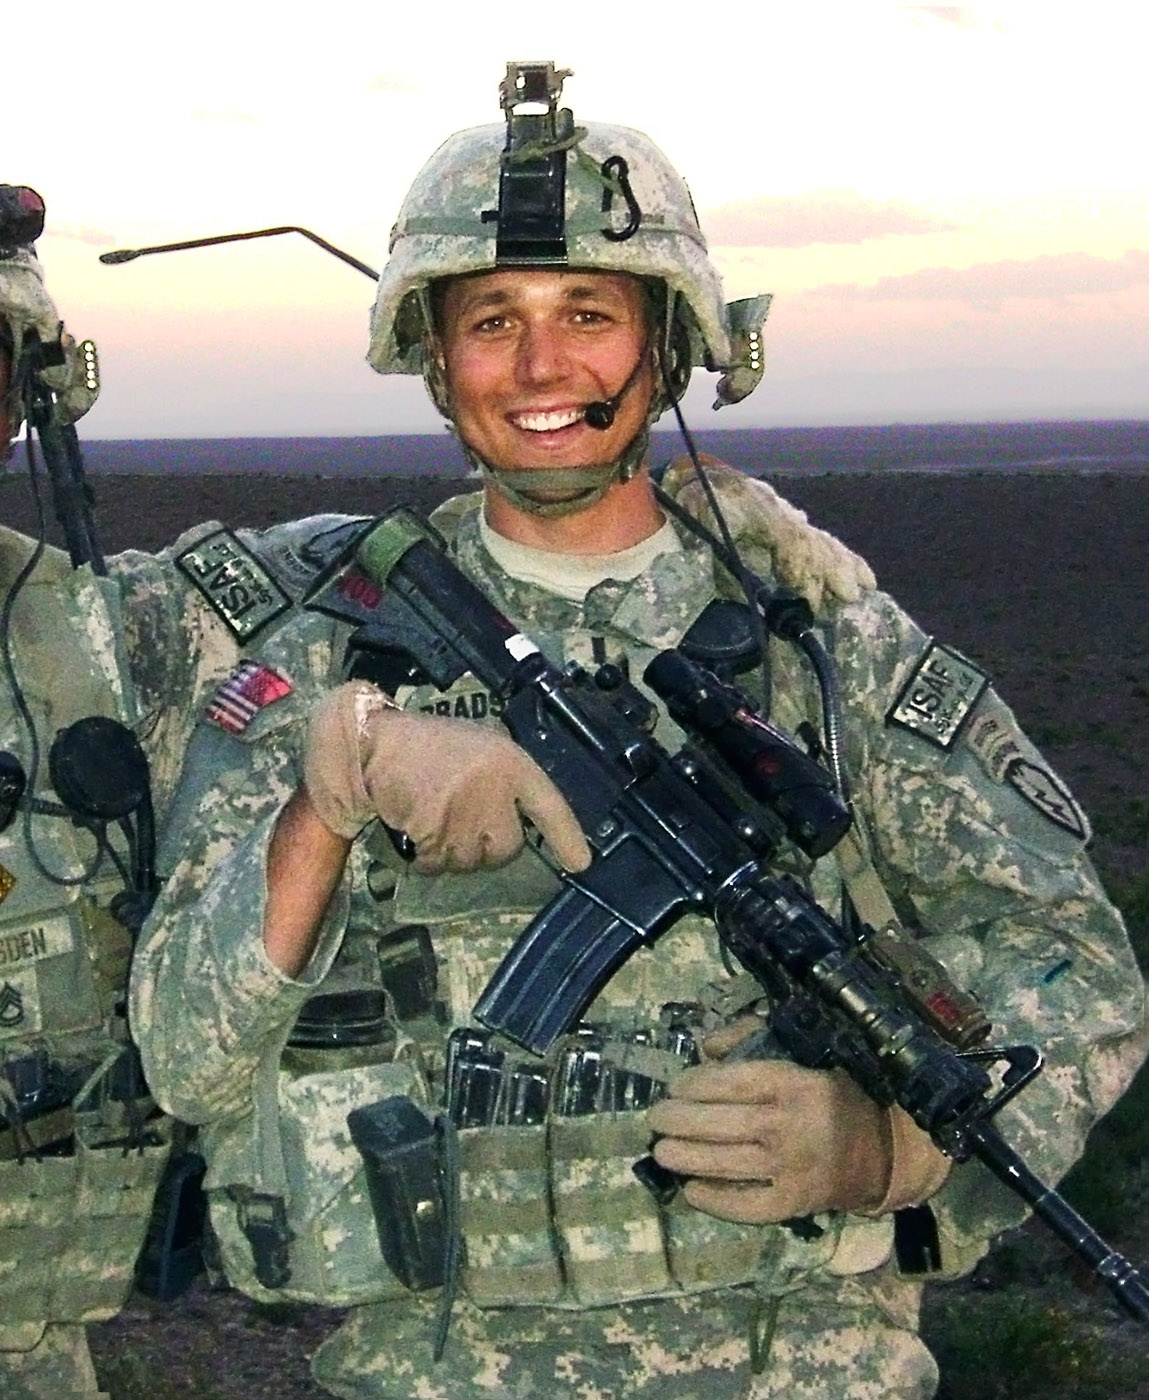 U.S. Army First Lieutenant Brian Bradshaw, 24, of Steilacoom, Washington, assigned to the 1st Battalion, 501st Parachute Infantry Regiment, 4th Airborne Brigade Combat Team, 25th Infantry Division, based in Fort Richardson, Alaska, died in Kheyl, Afghanistan, on June 25th, 2009, from wounds suffered when insurgents detonated a roadside bomb near his vehicle. He is survived by his parents, Paul and Mary, and brother Robert.